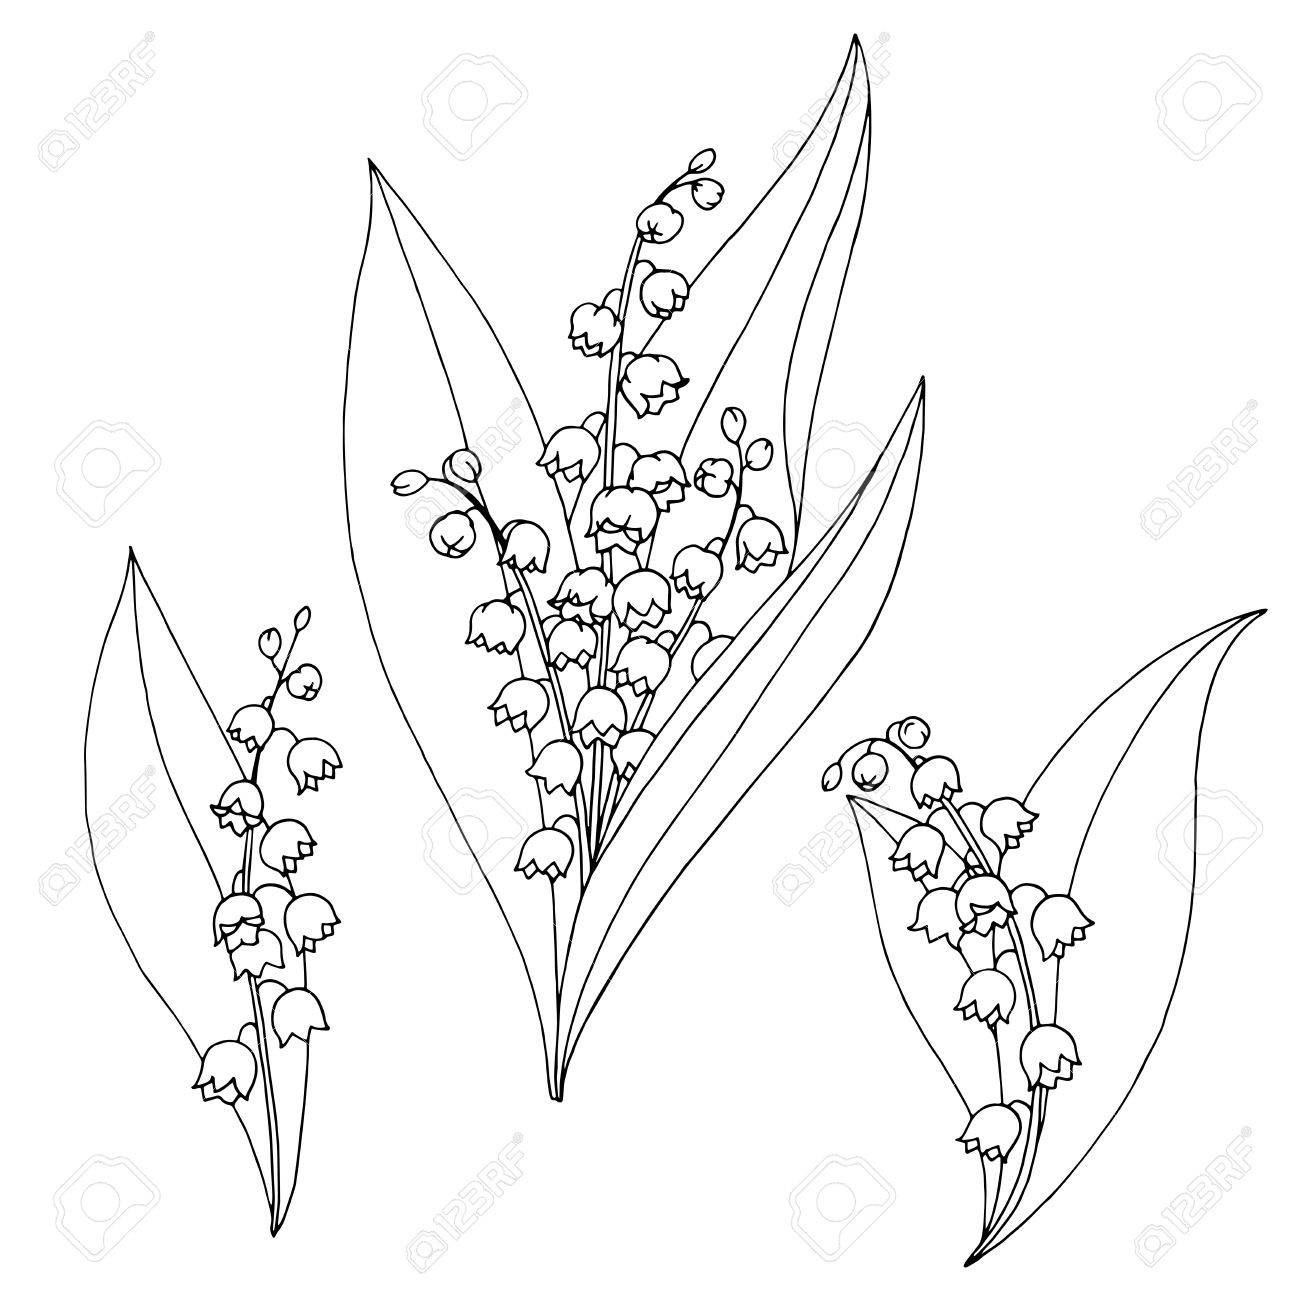 Lily Of The Valley Drawing At Getdrawings Free For Personal